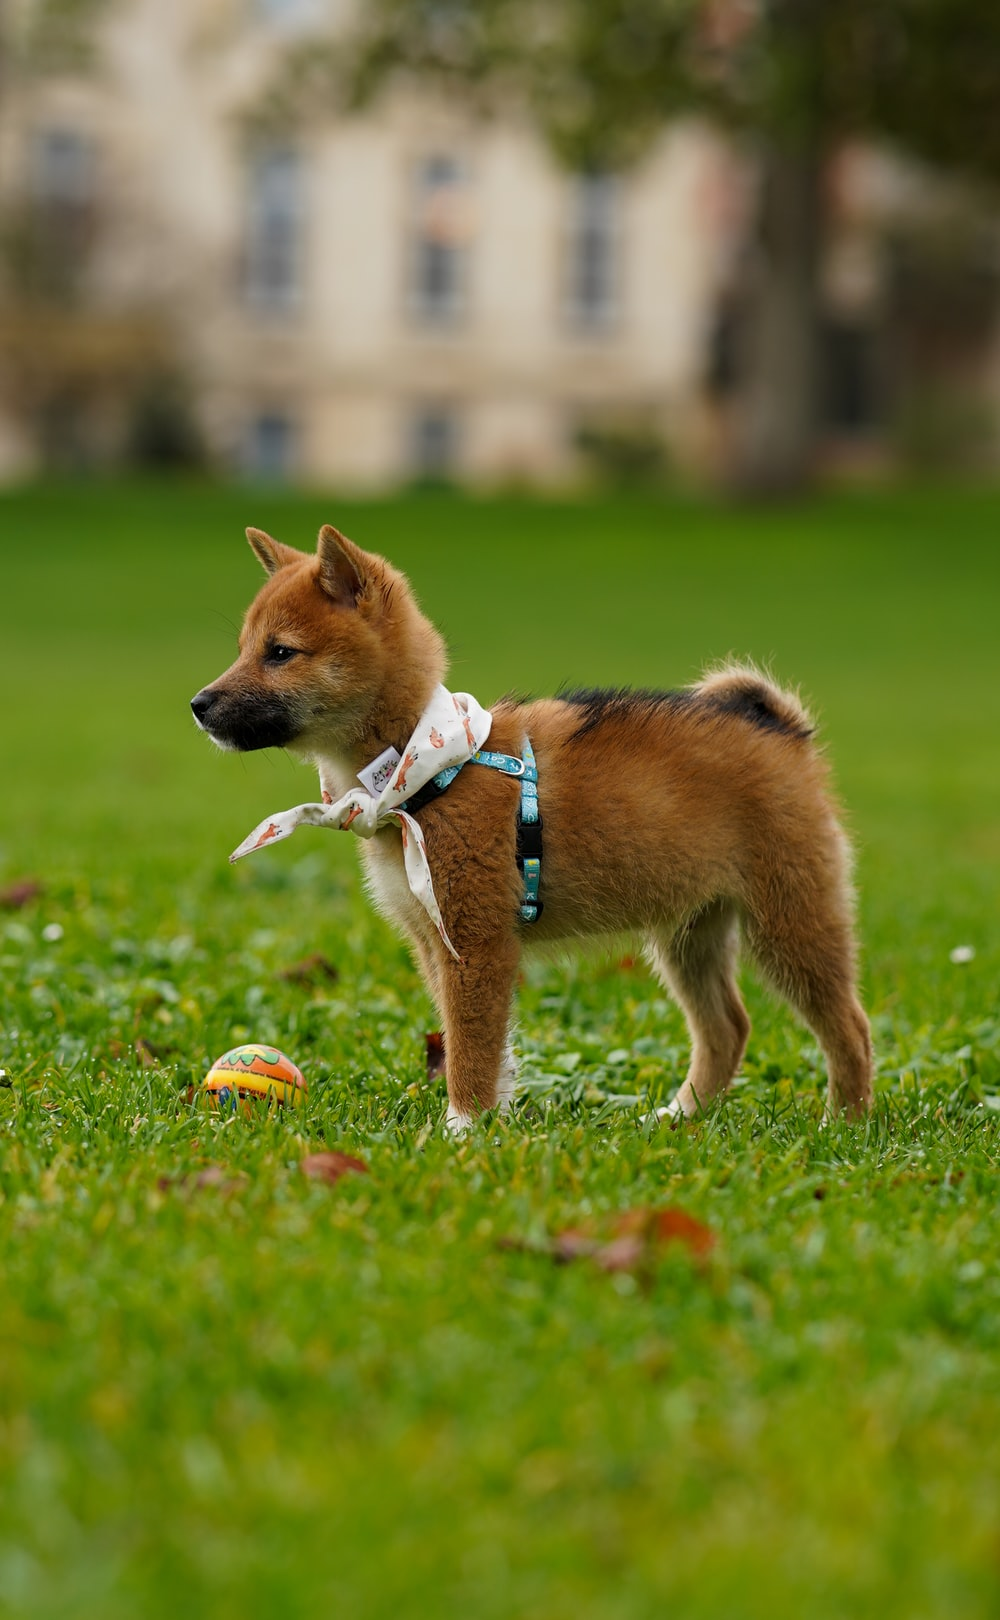 short-coated brown puppy on green grass during daytime